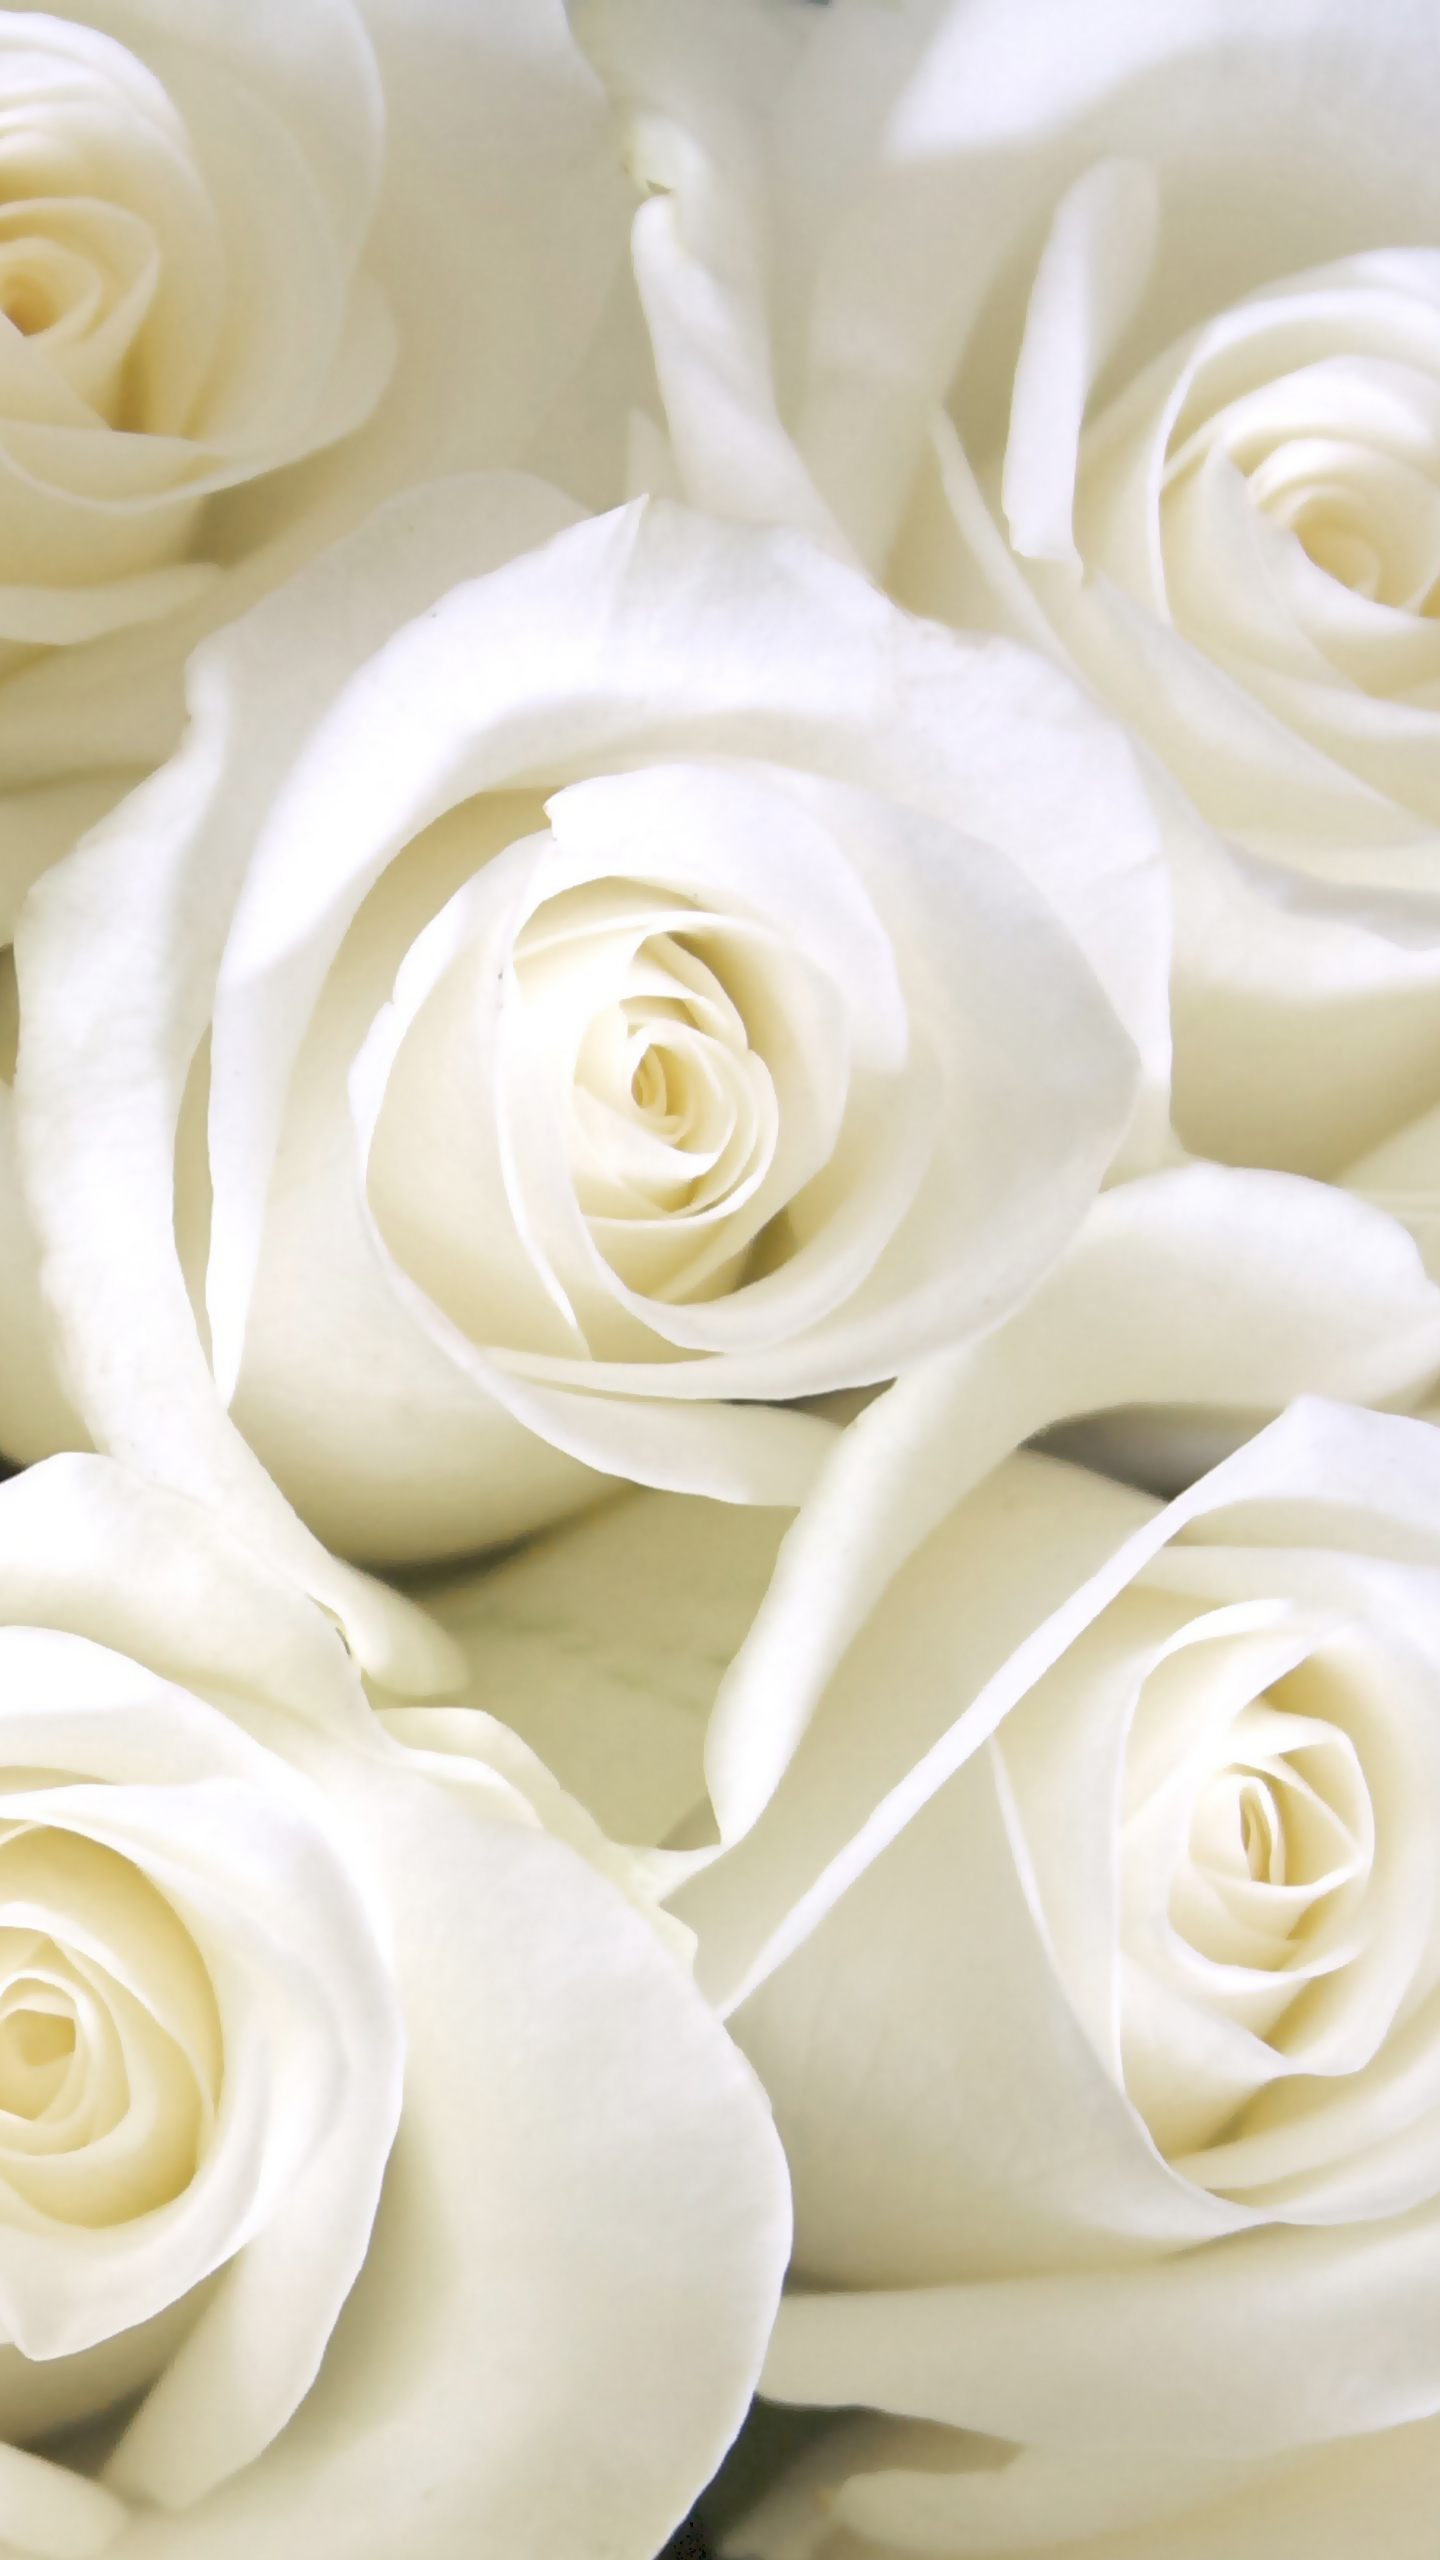 Cool 3d Flower Wallpaper Samsung Galaxy S7 White Roses Wallpaper Gallery